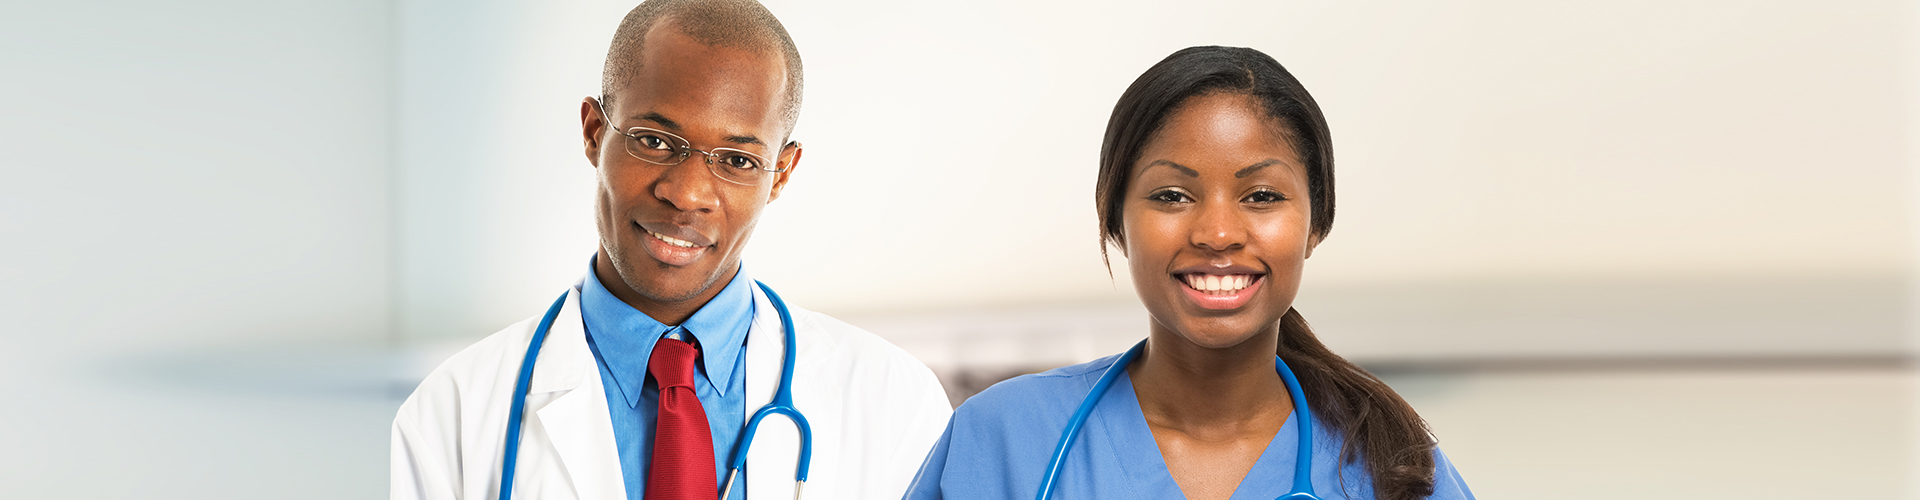 a male doctor and female nurse smiling